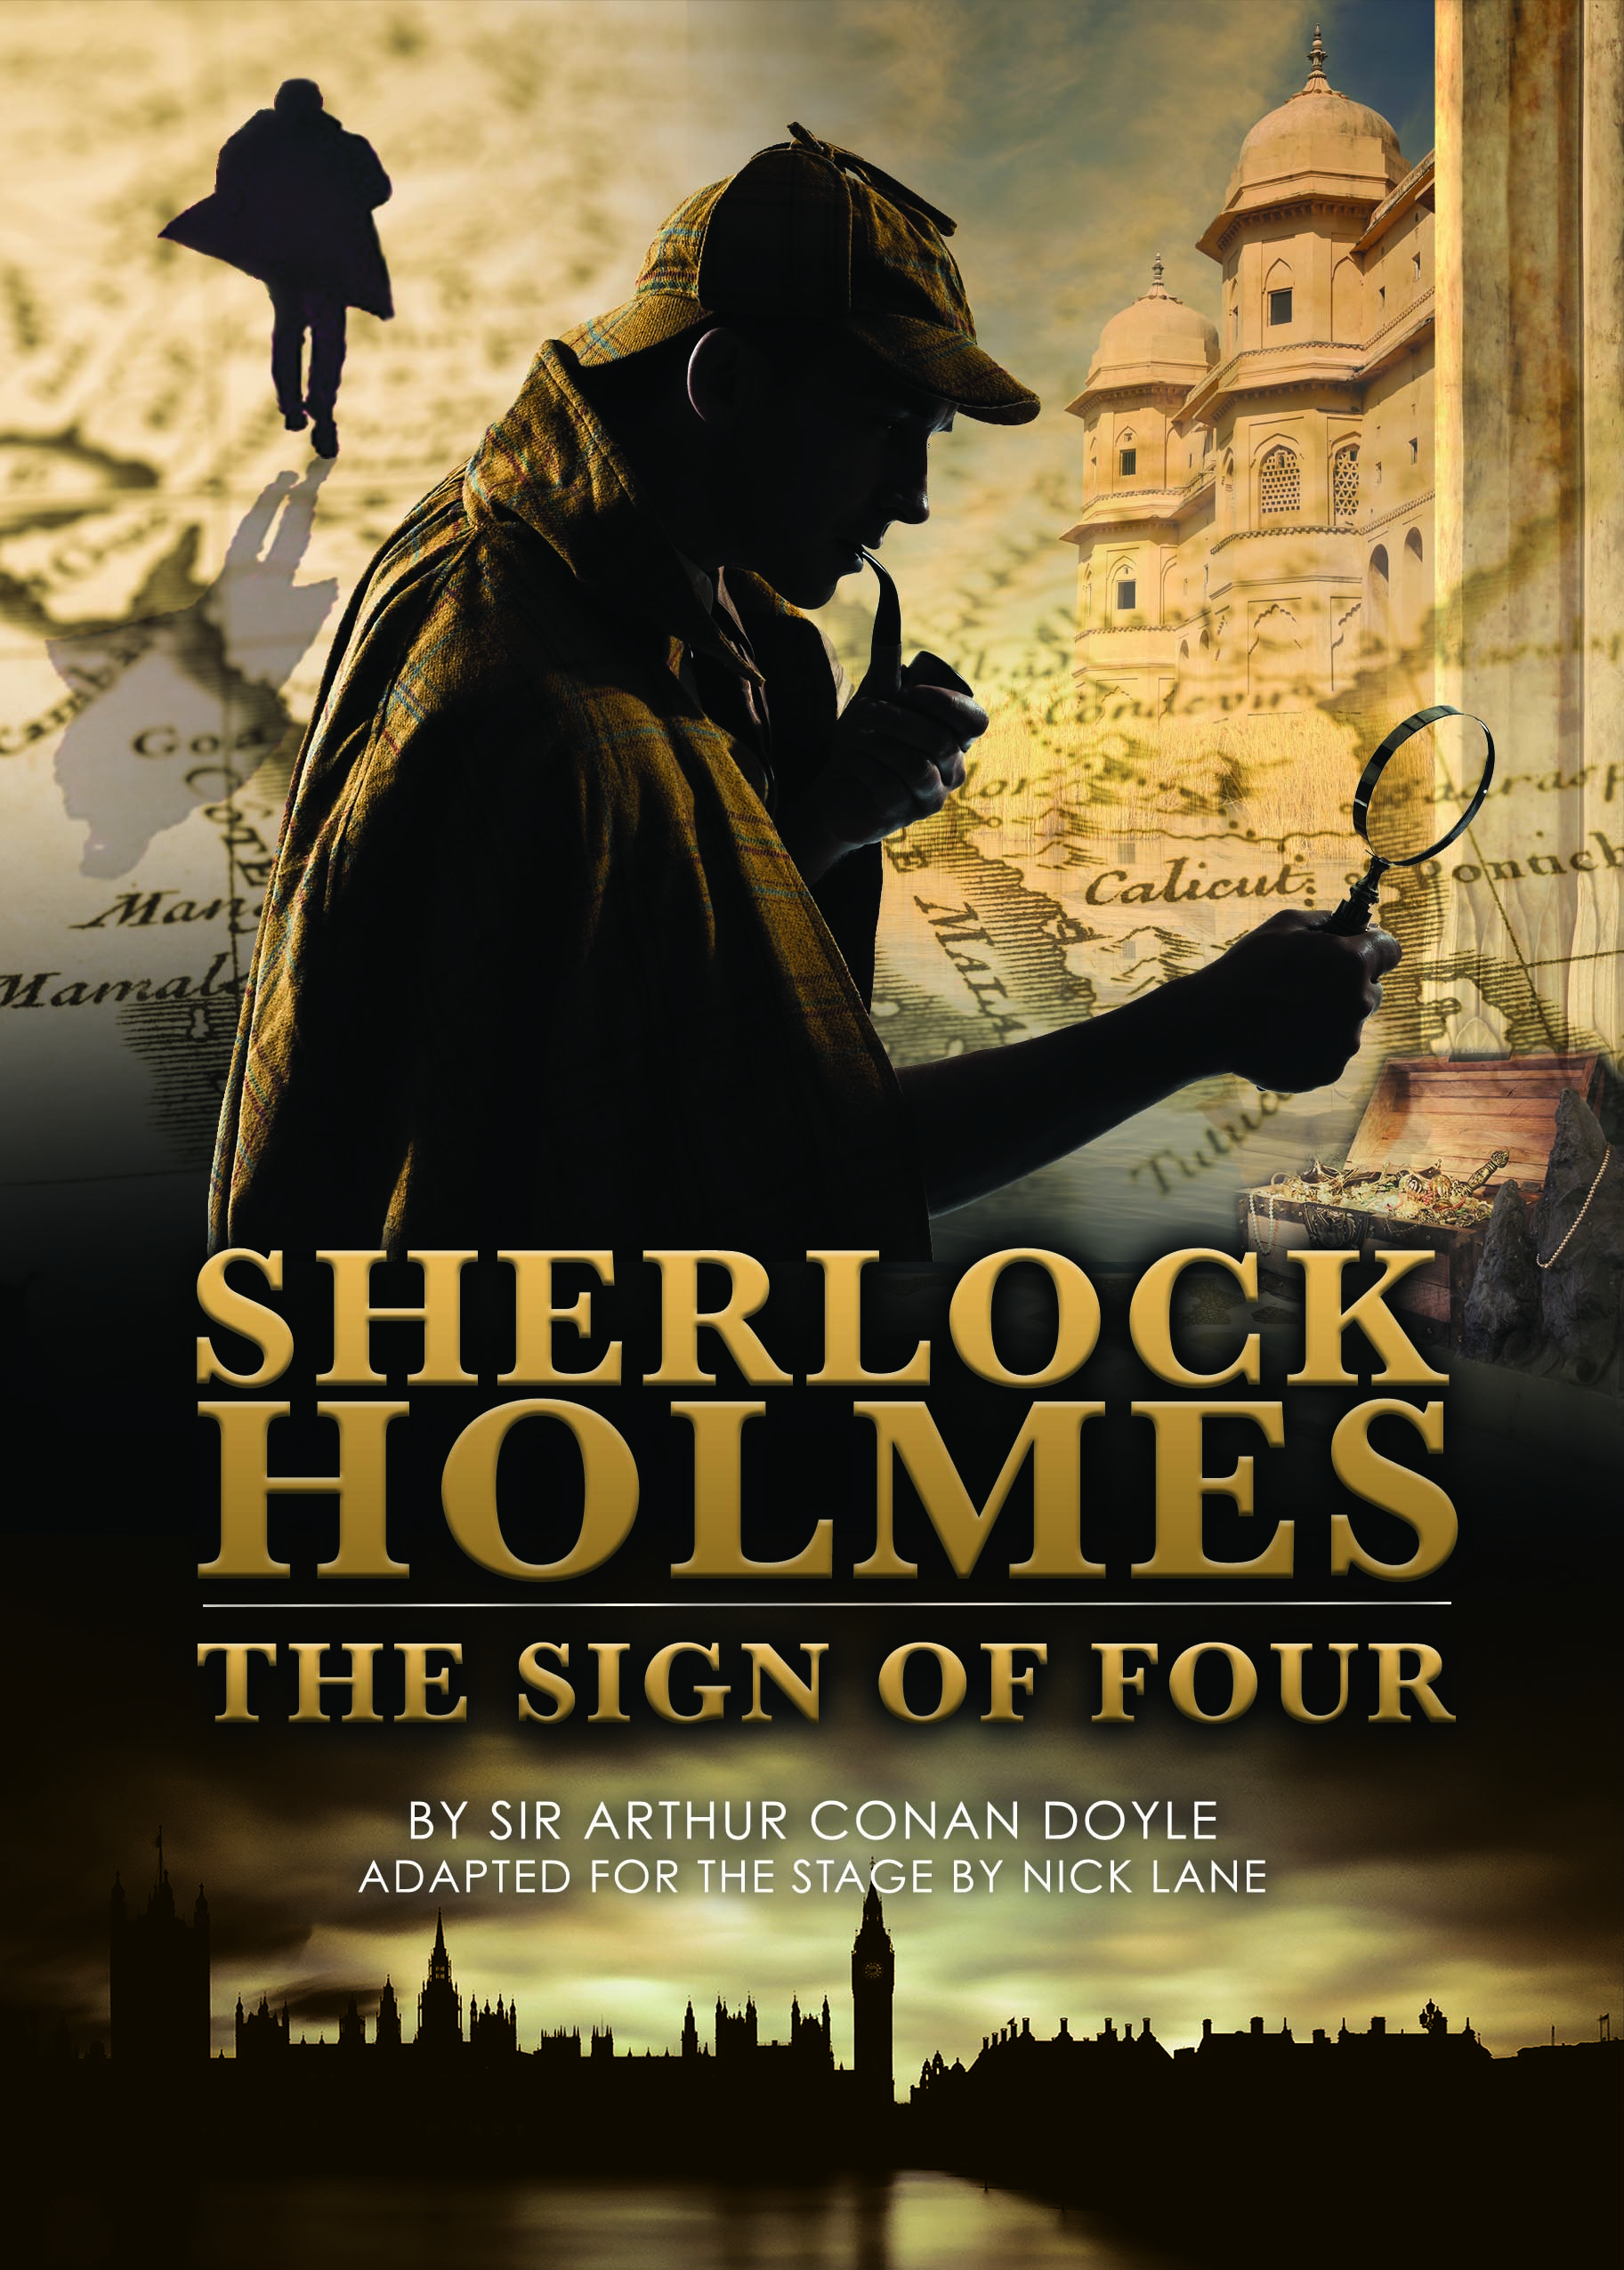 Sherlock Holmes Sign of Four Image med res